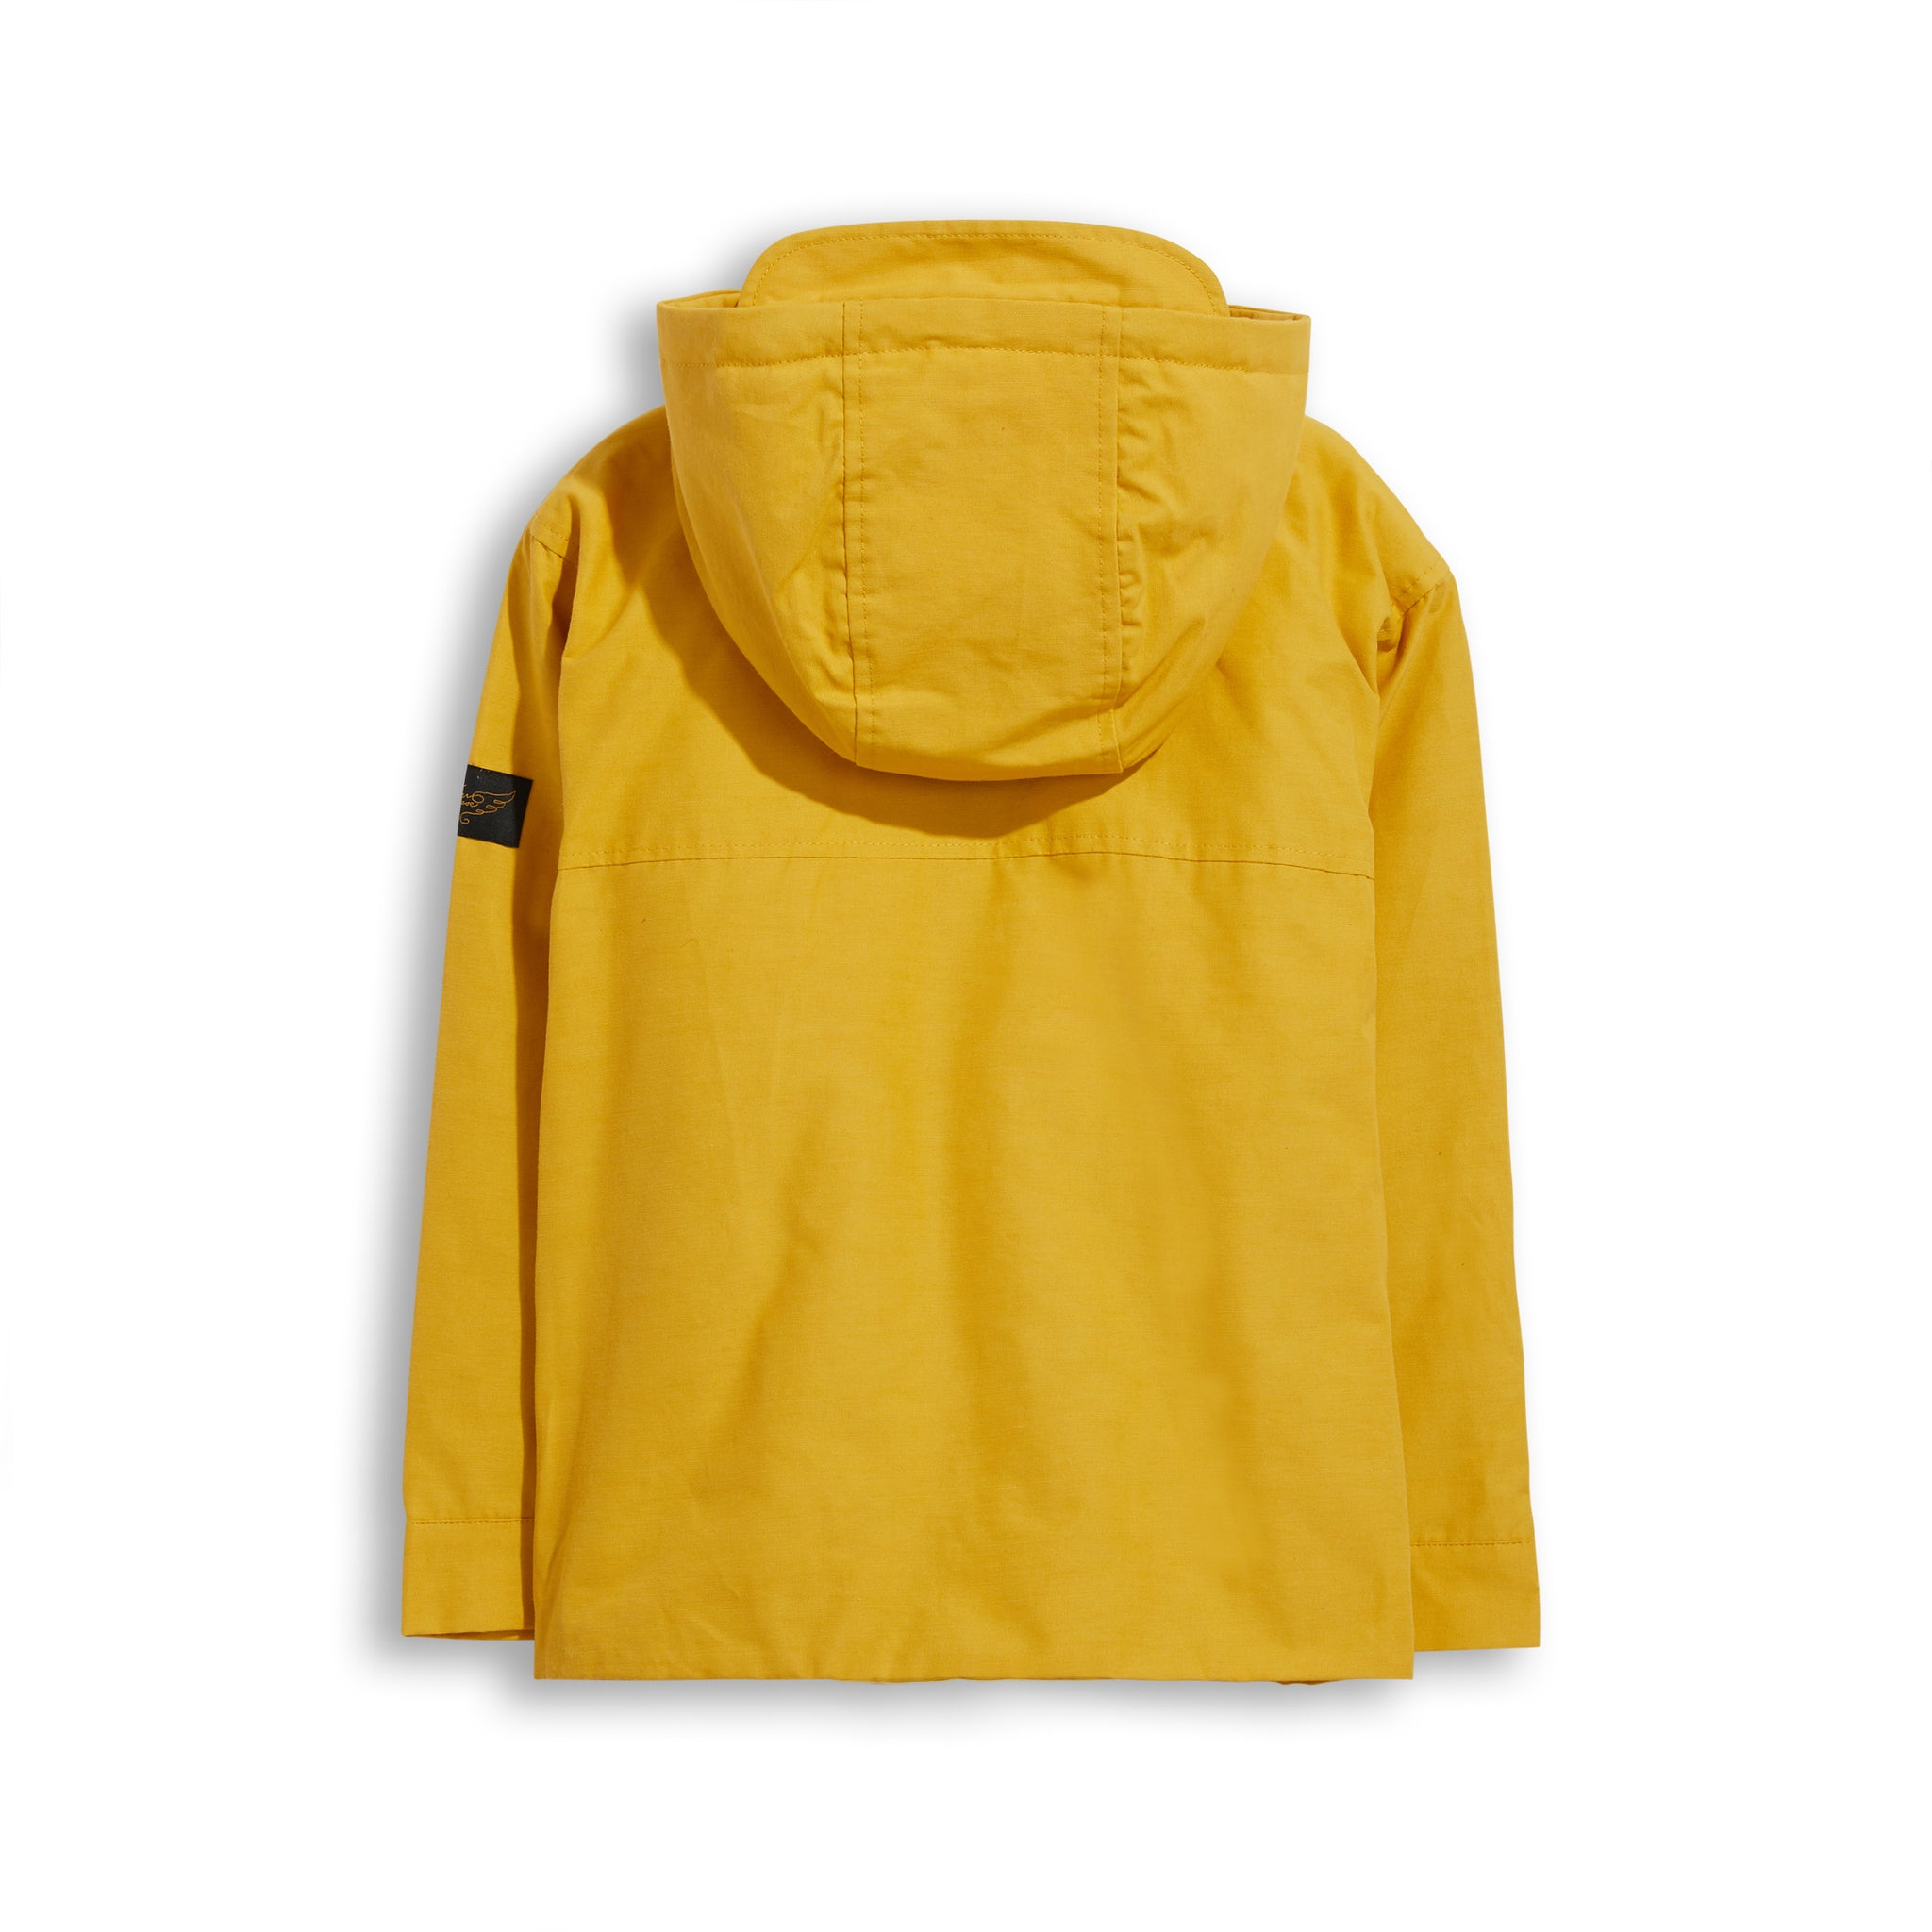 ZEPHYR Mustard -  Windbreaker Jacket 4